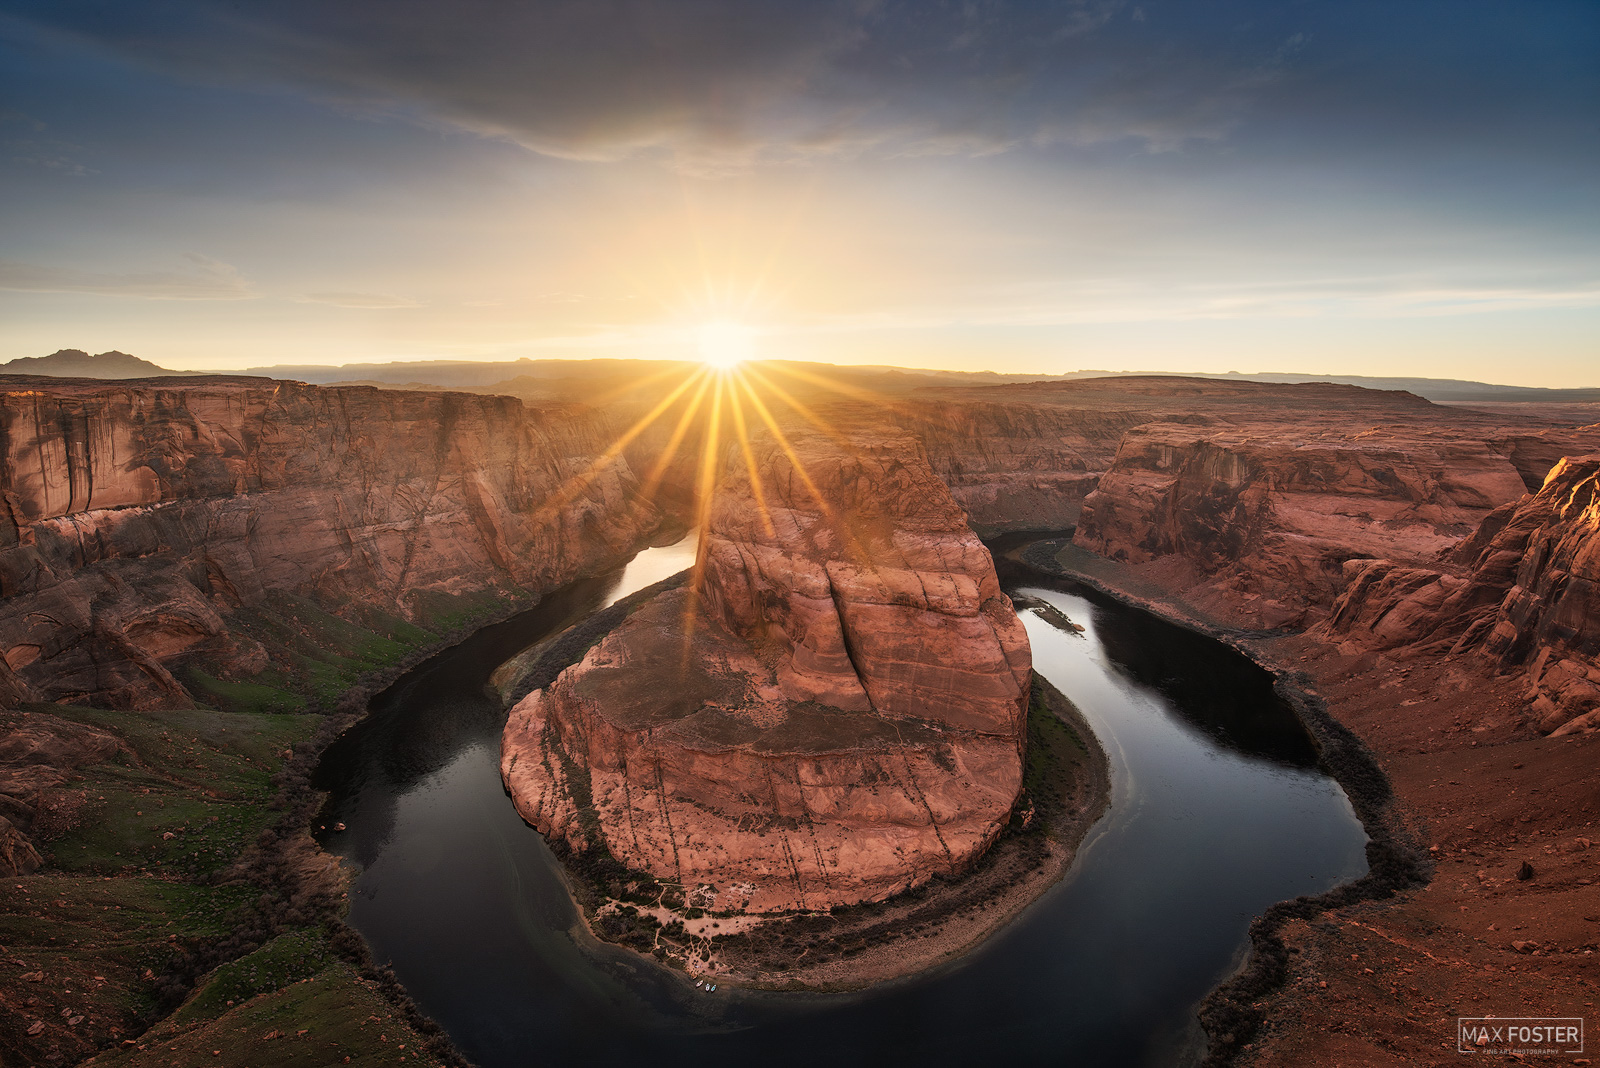 Horseshoe Bend, Page, Arizona, Star Struck, Colorado River, Glen Canyon Dam, Lake Powell, Glen Canyon National Recreation Area, photo